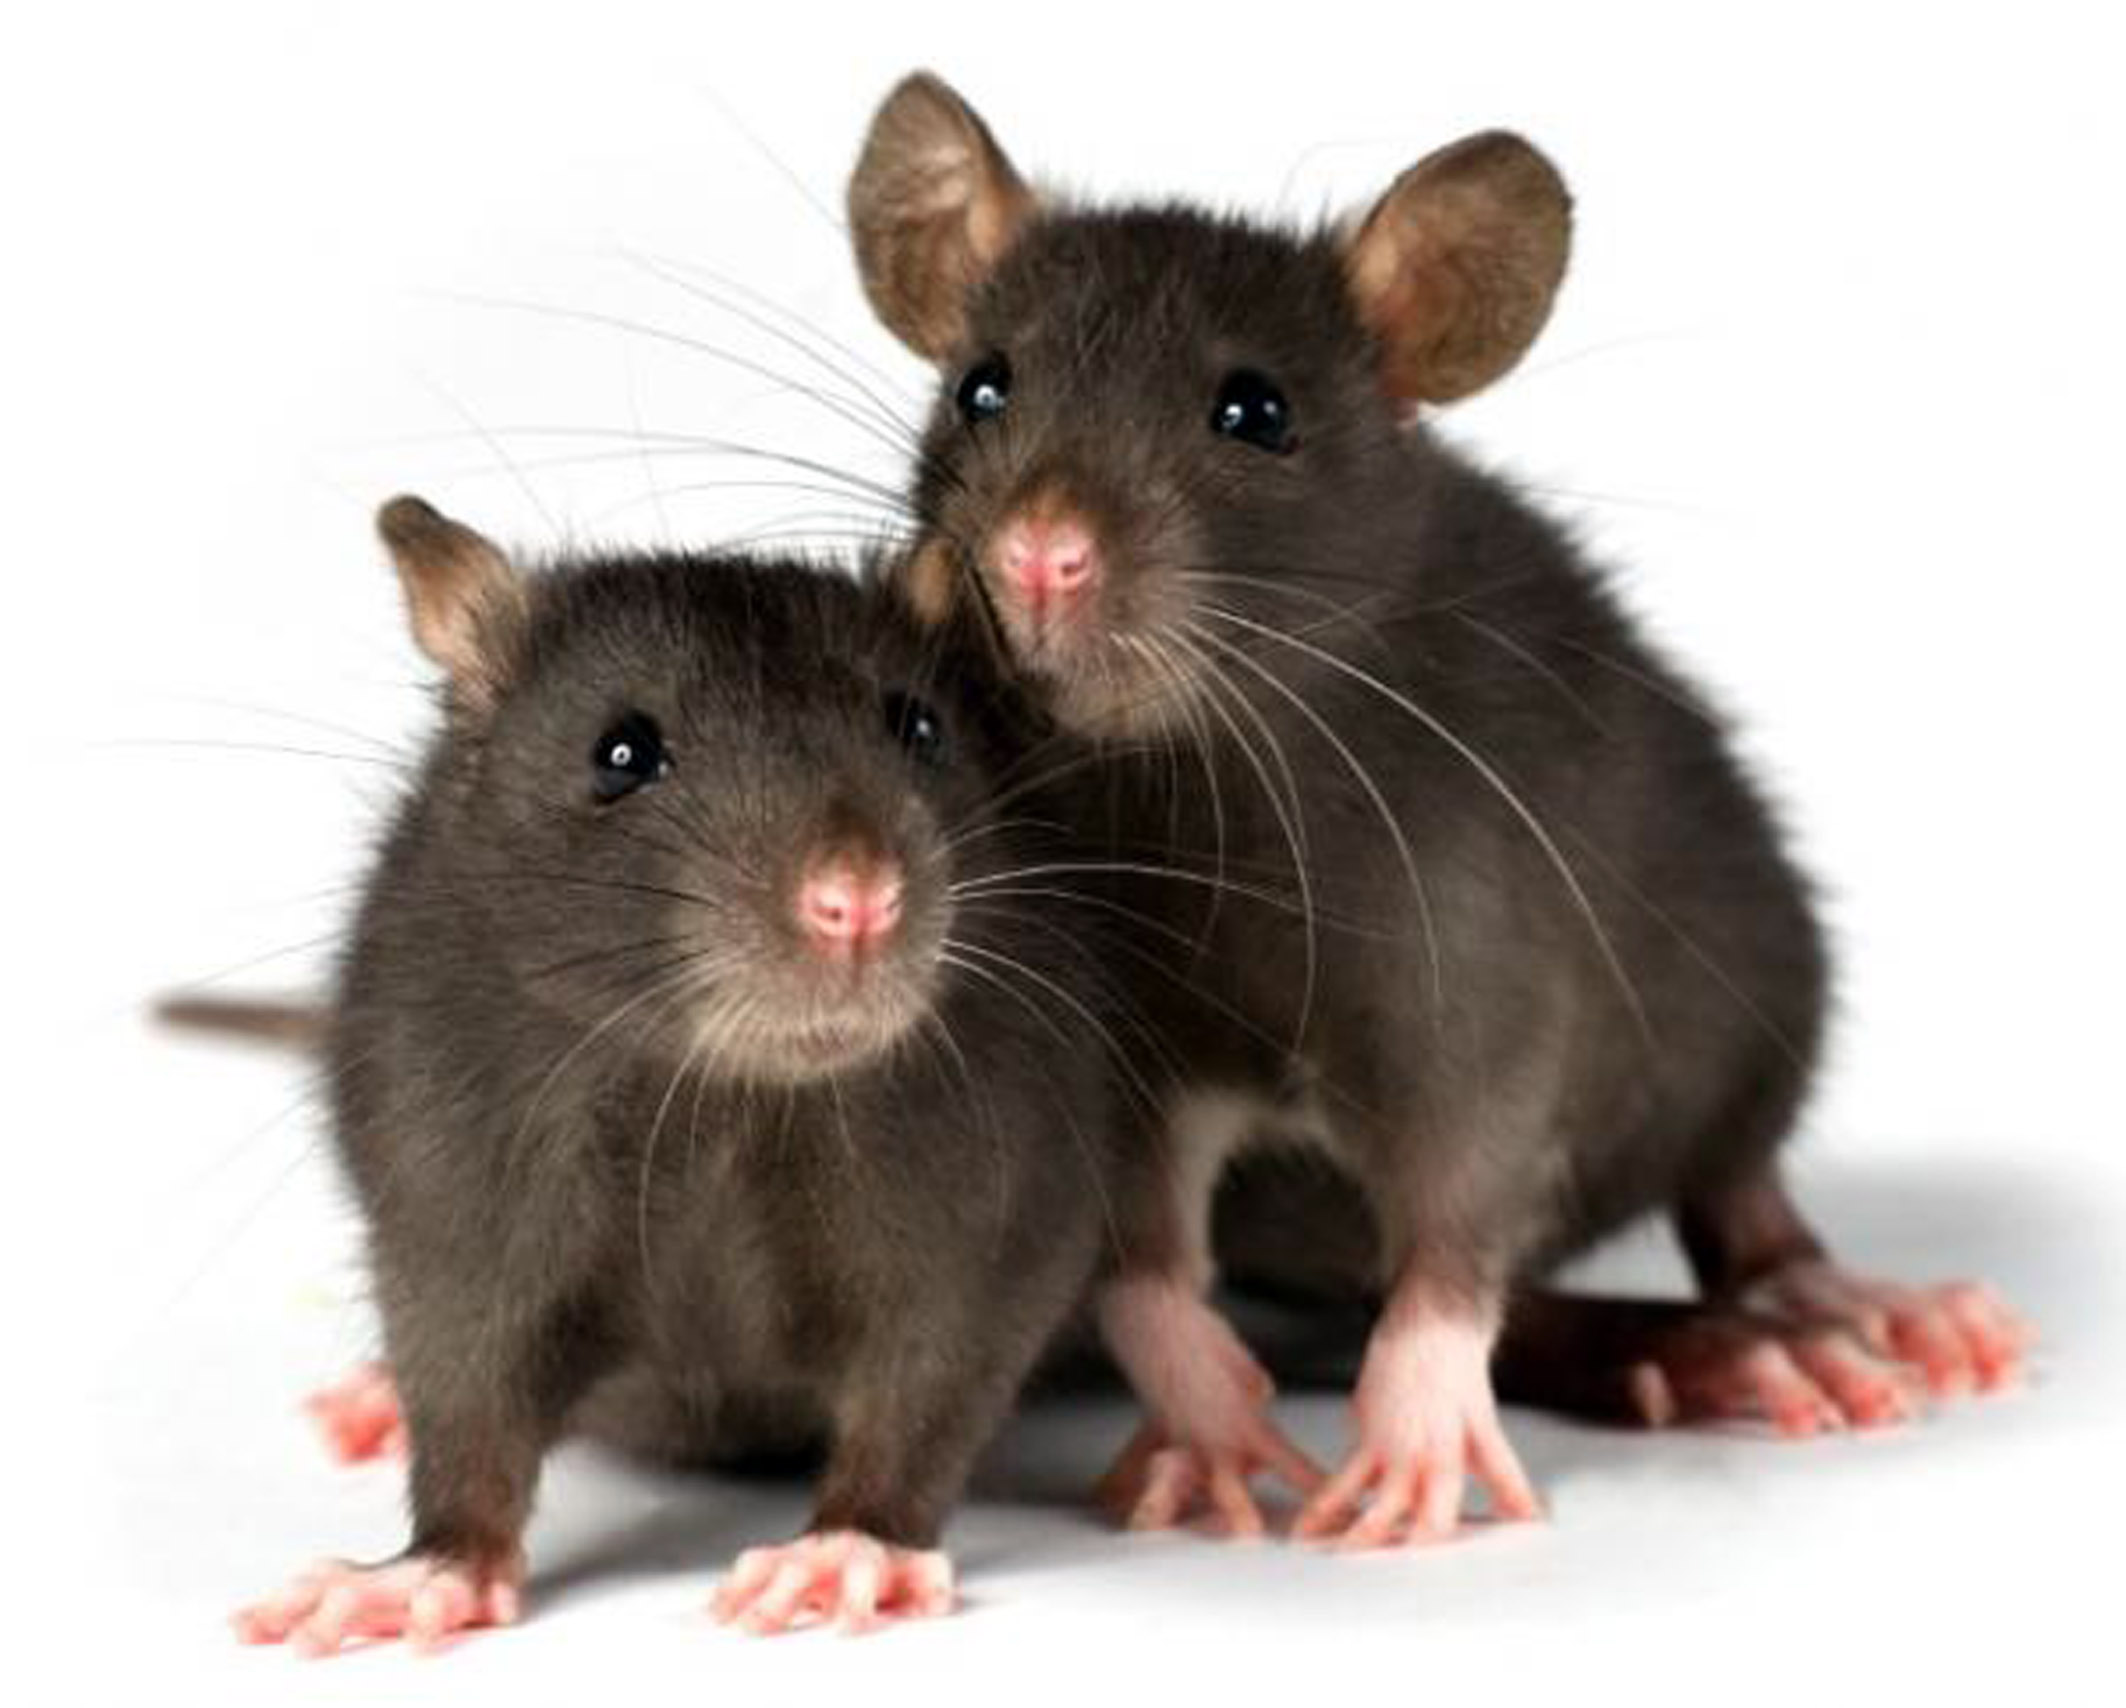 Rats! I'm moving to Halton for cheaper vermin control